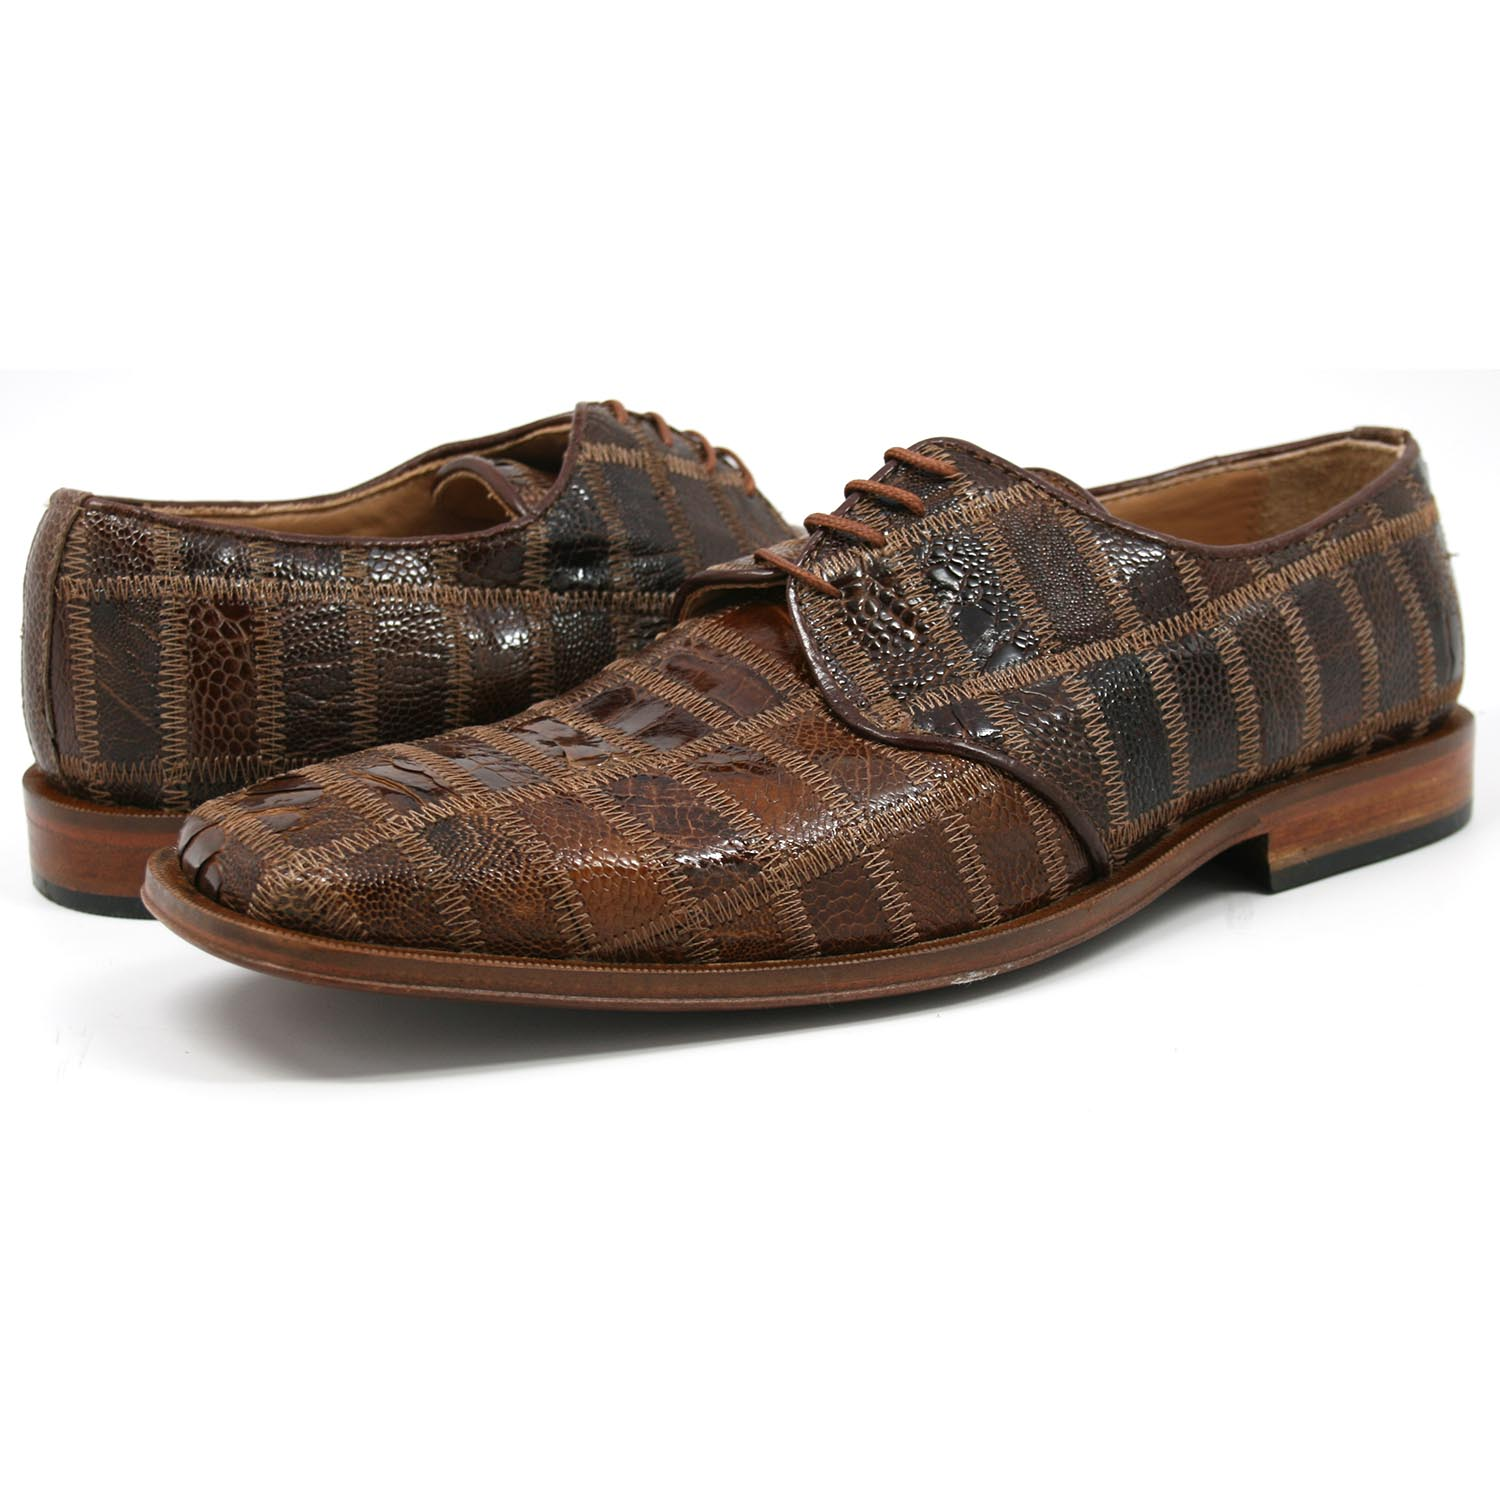 David Eden Men's Trek Patchwork Ostrich Leg Leather Taupe